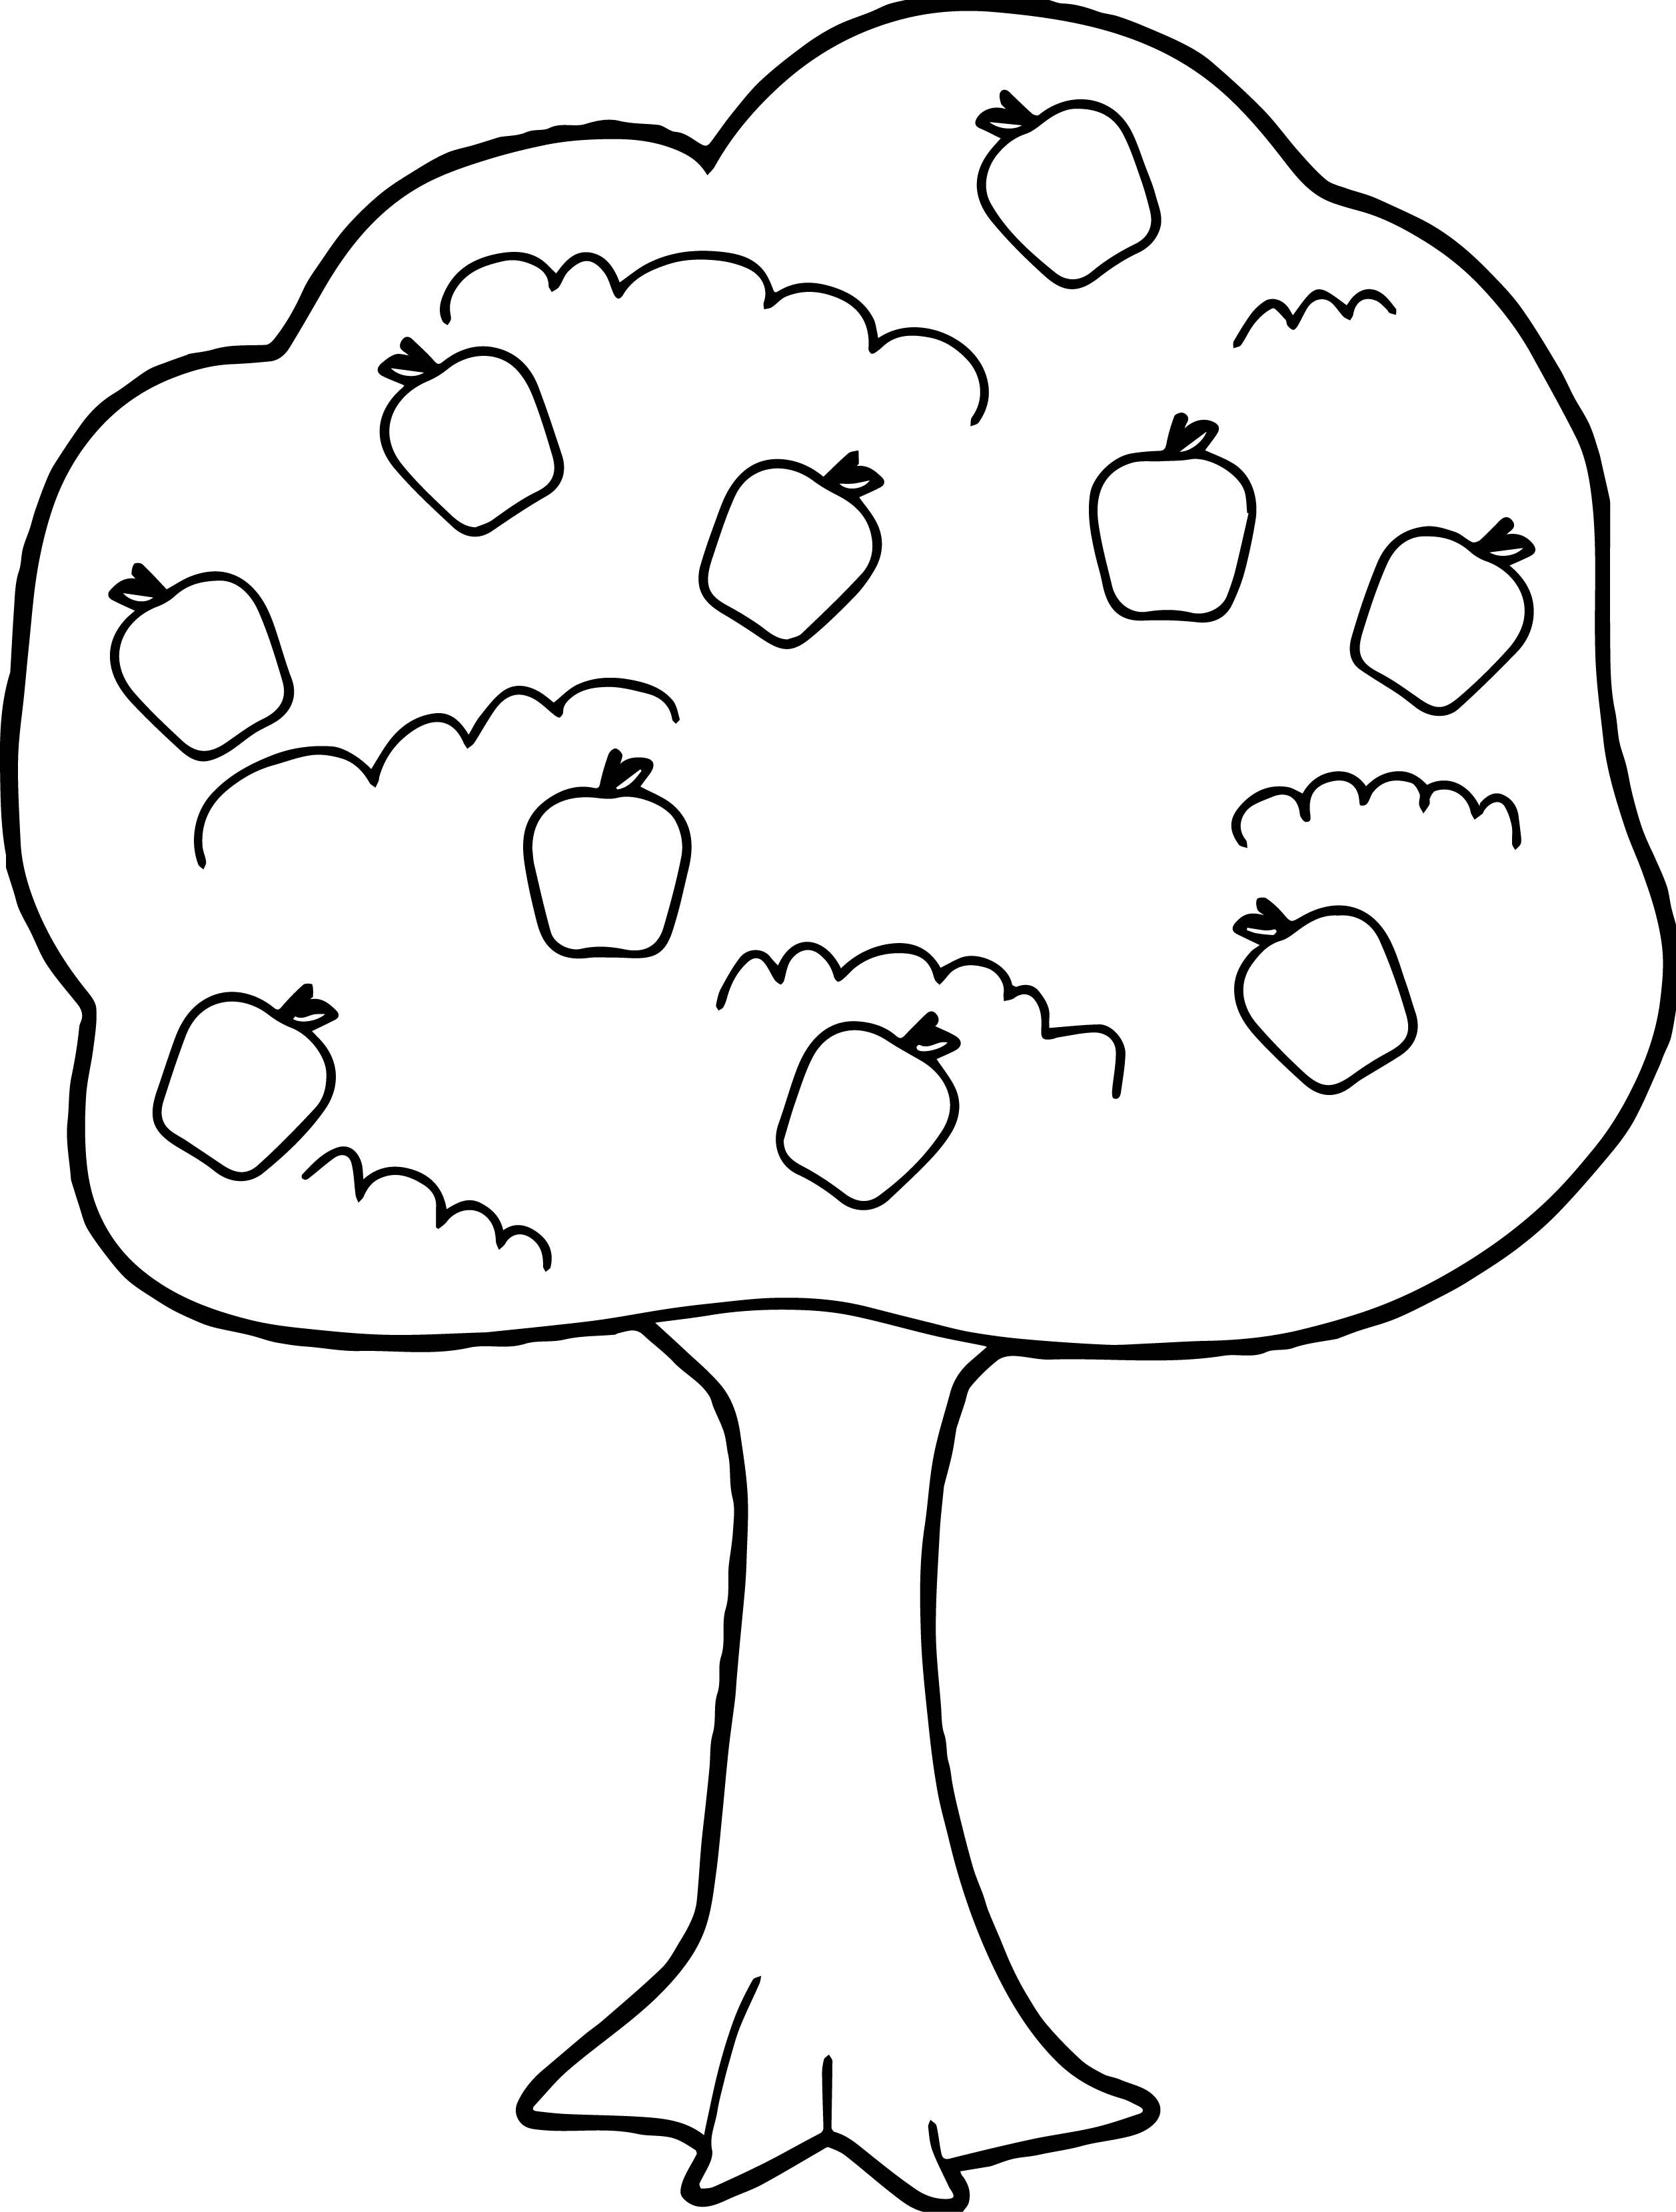 2515x3319 Marvelous Fruit Tree Coloring Pages Funny To Print Of Apple